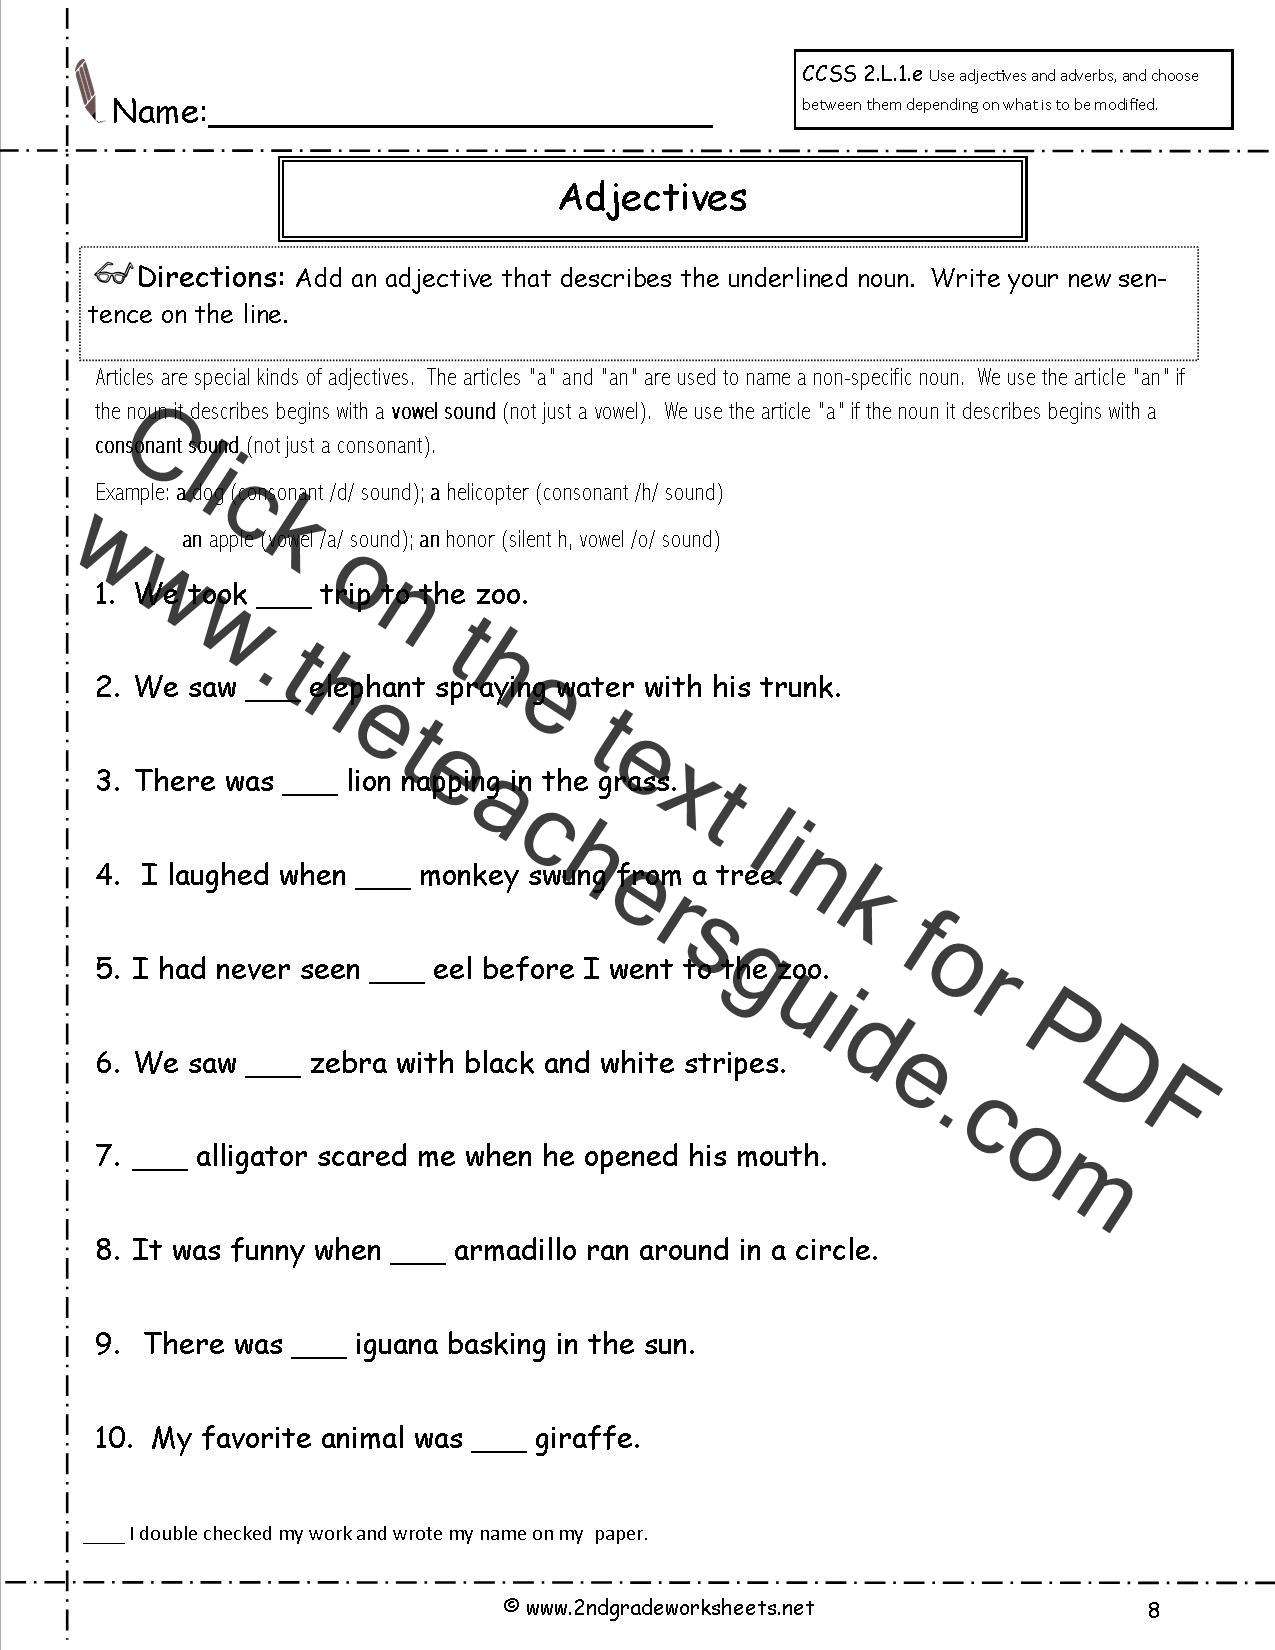 Worksheets Printable Noun Worksheets free languagegrammar worksheets and printouts adjectives worksheets